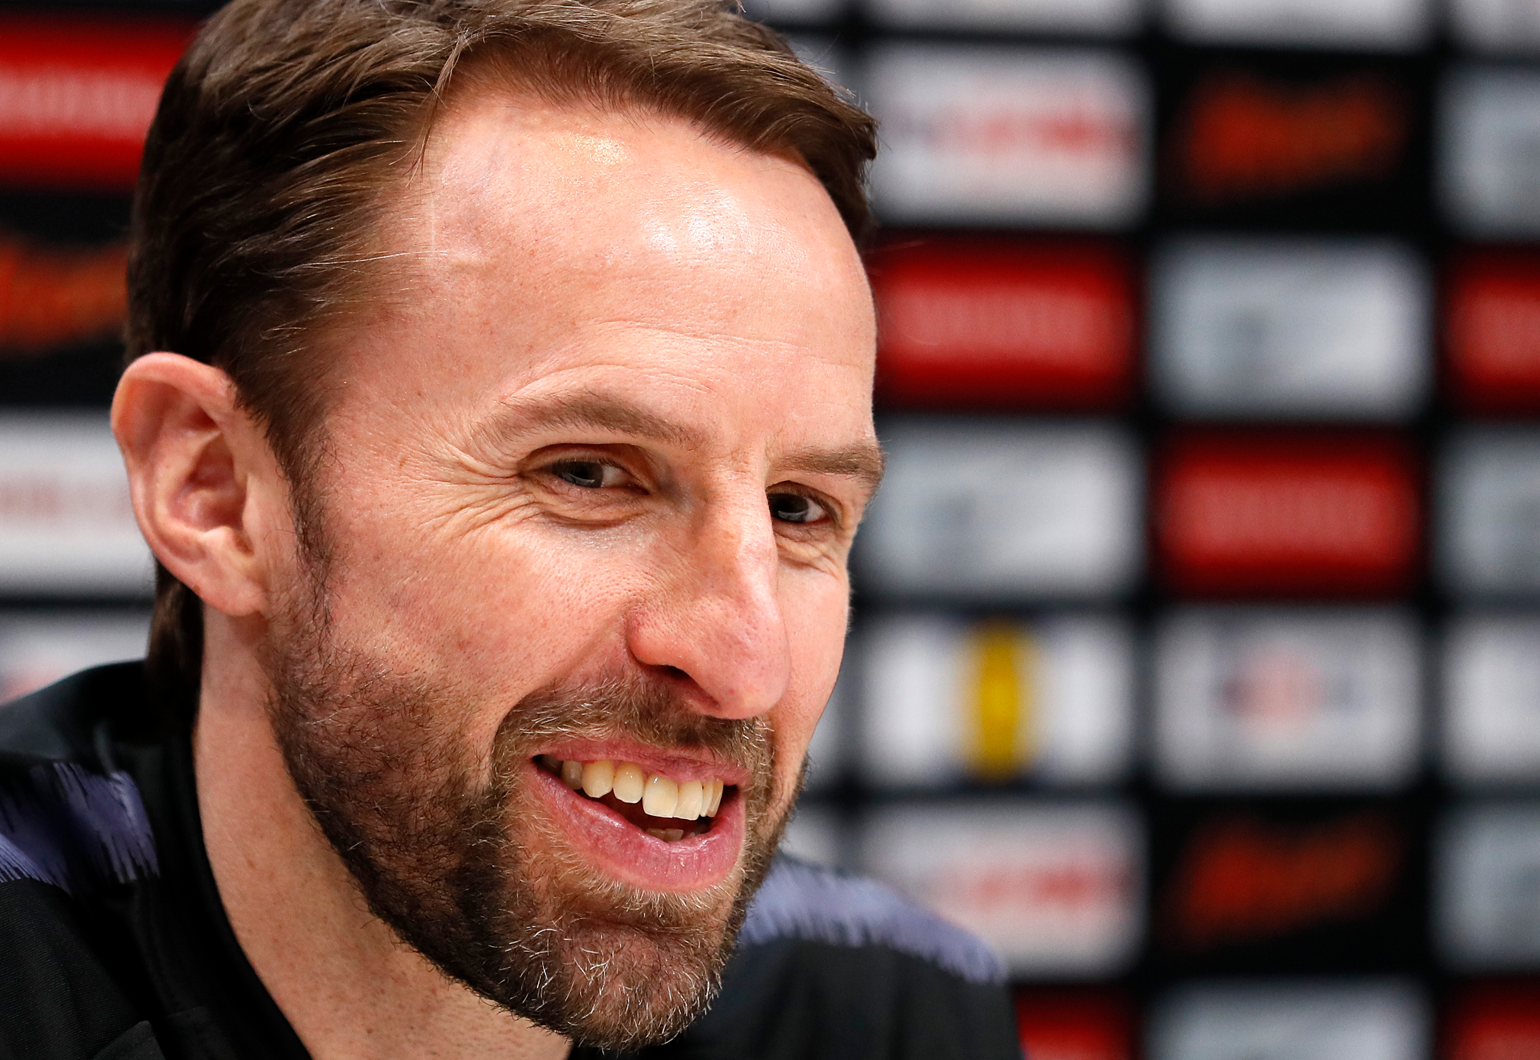 Could Southgate Have Found the Key for Manchester United?